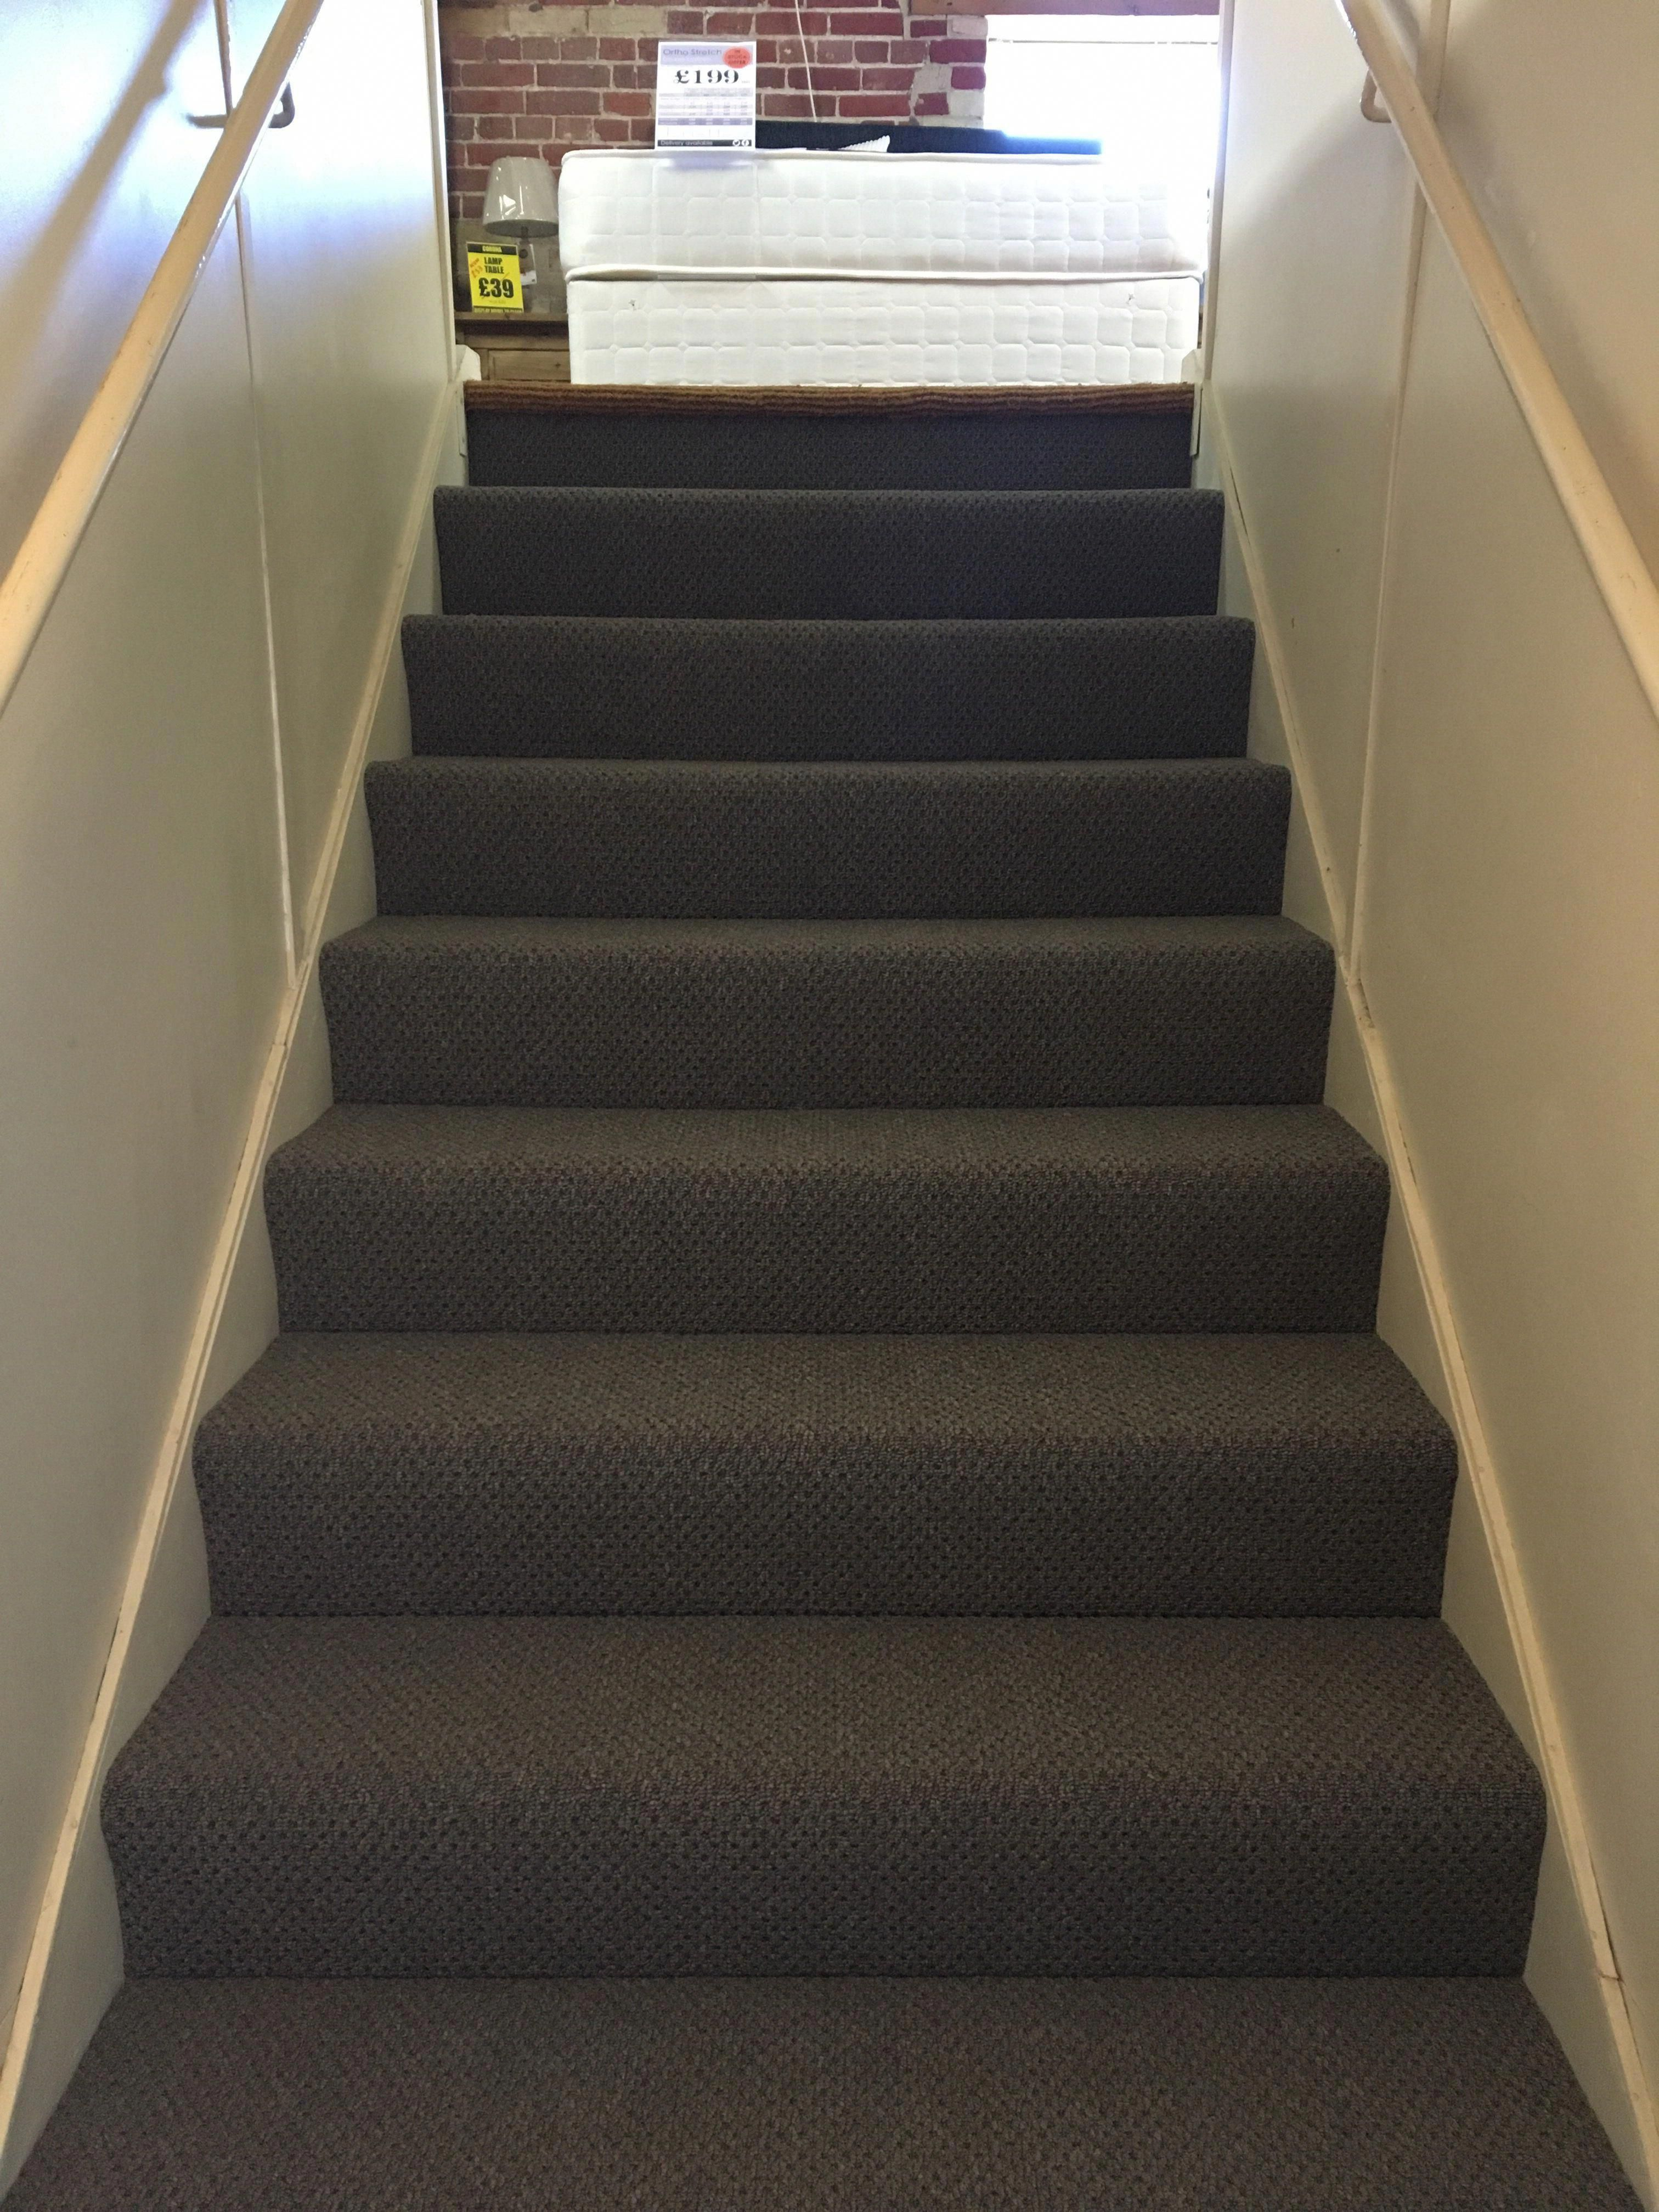 Carpet Runners 36 Inches Wide CarpetRunnersWithBorders id